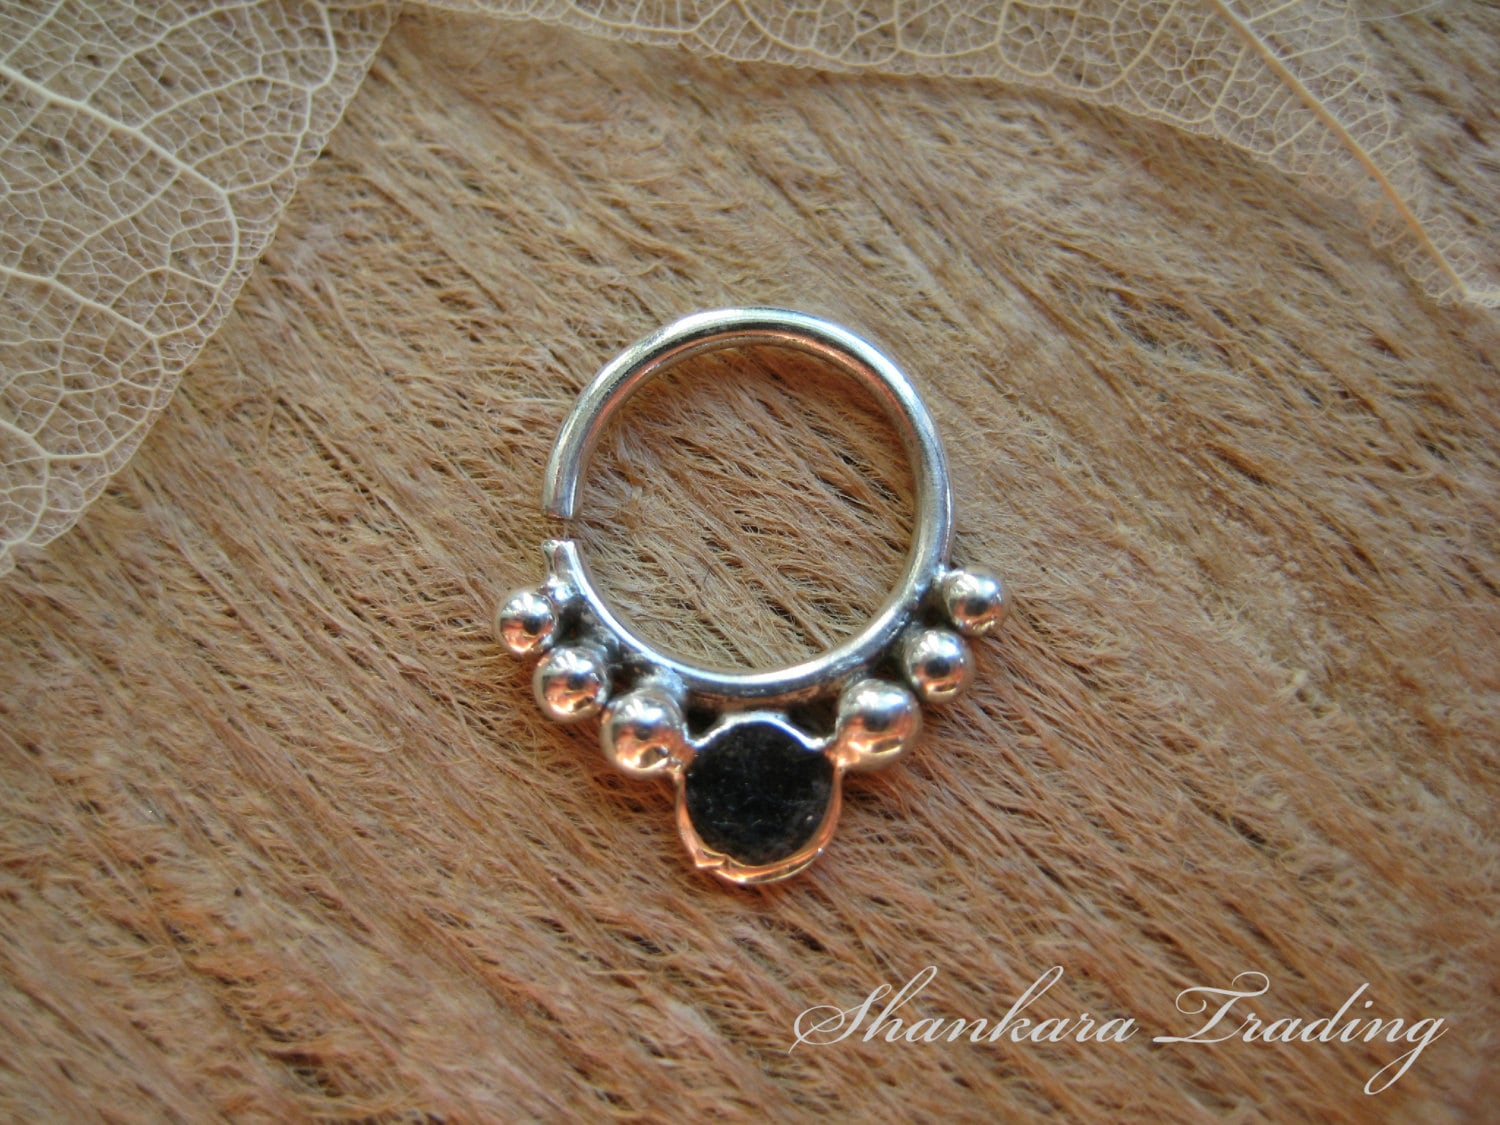 septum ring sterling silver septum jewelry indian septum